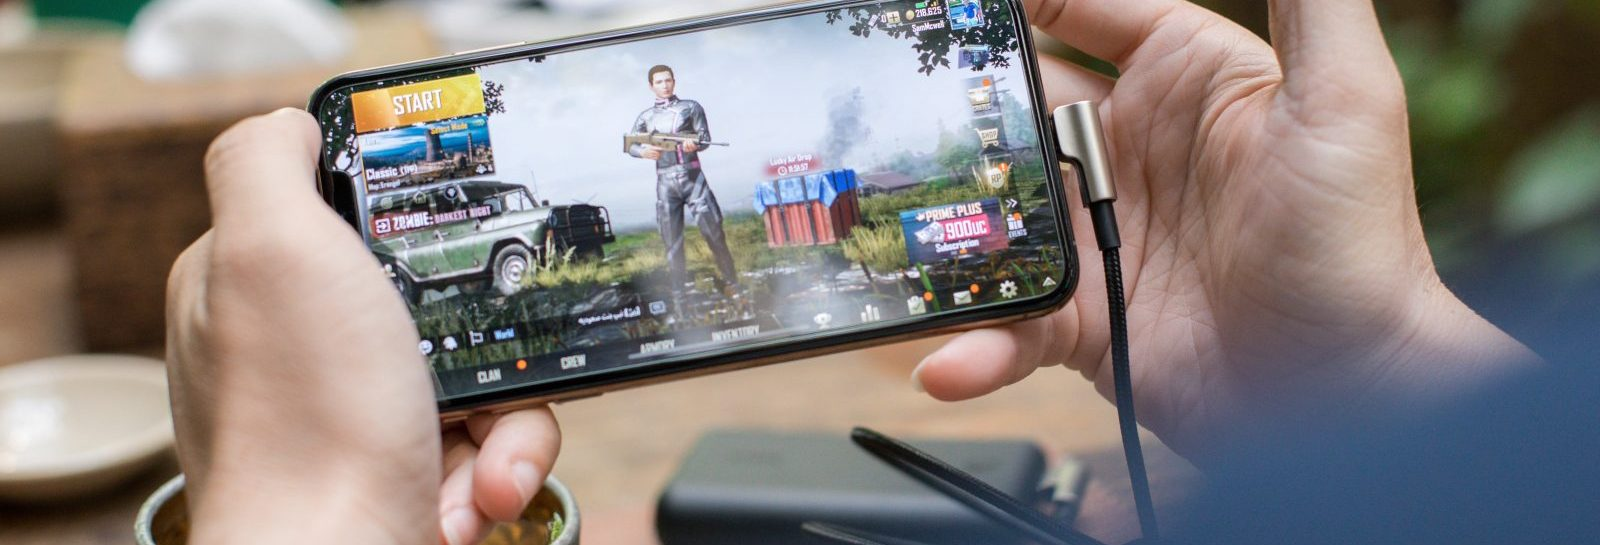 gamer-protocol-mobile-gaming-accessories